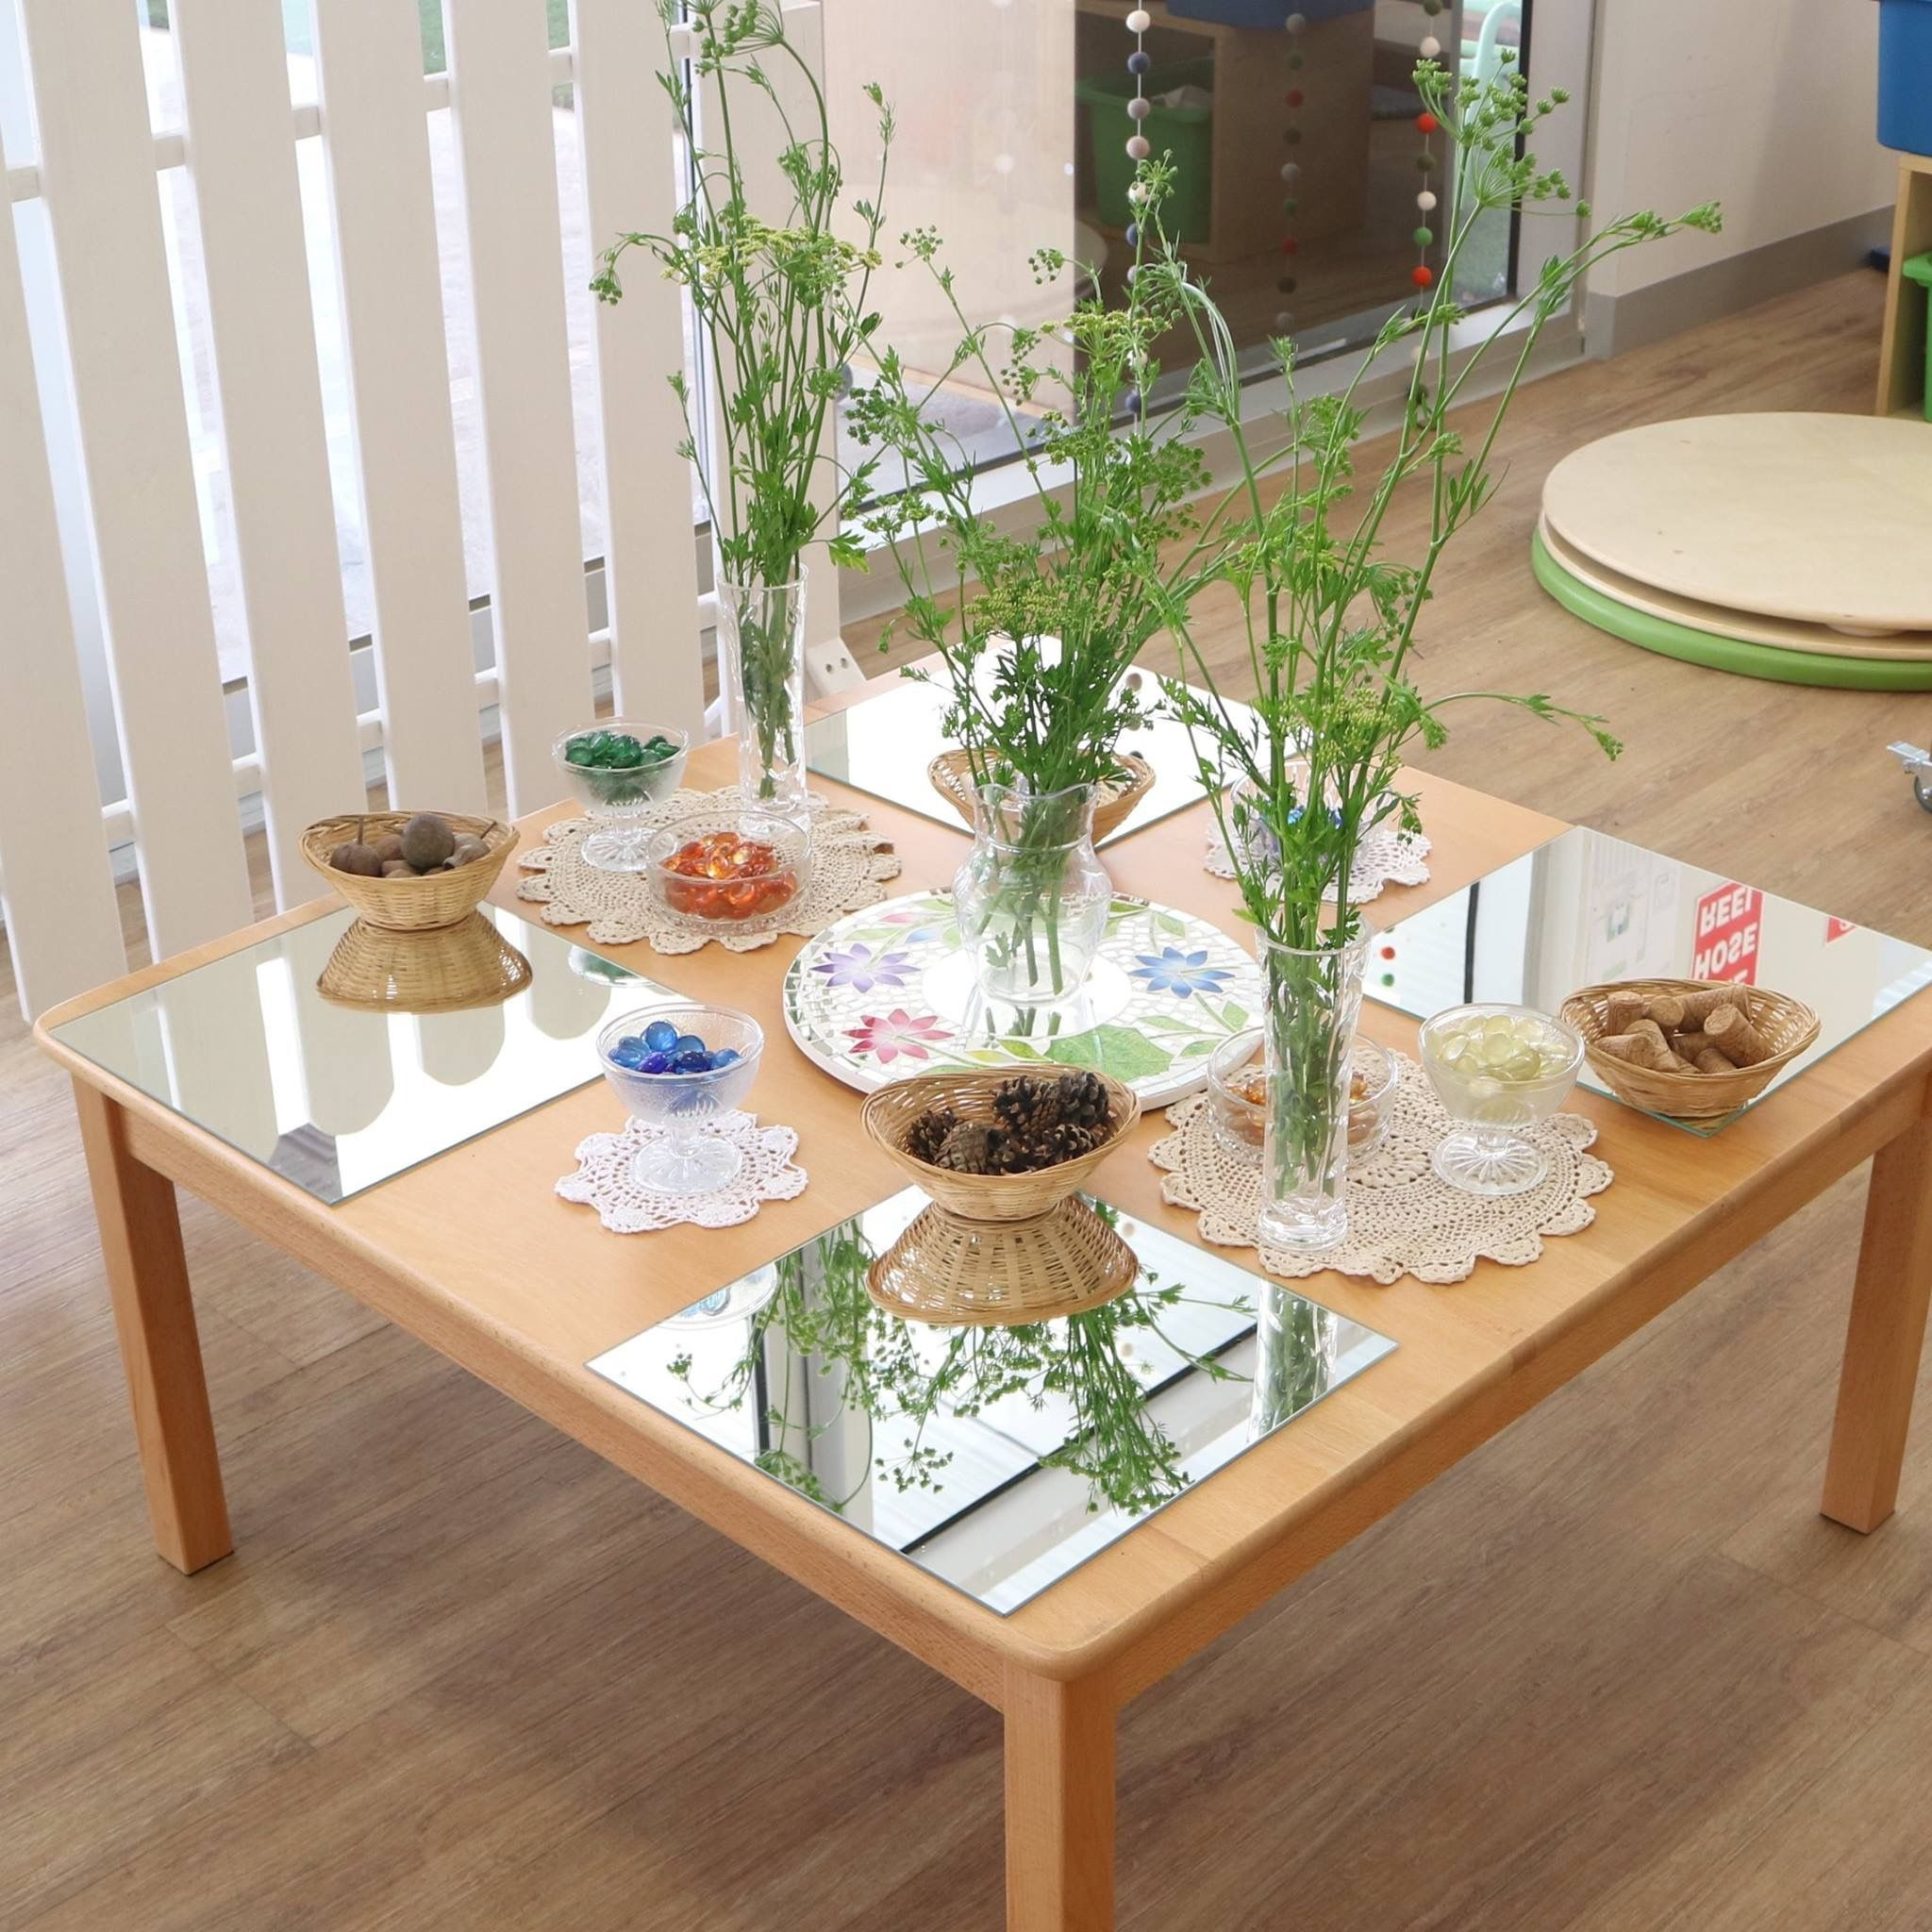 Pin By Mandy Dortmann On Kinderbetreuung In 2020 Reggio Inspired Classrooms Reggio Children Reggio Classroom